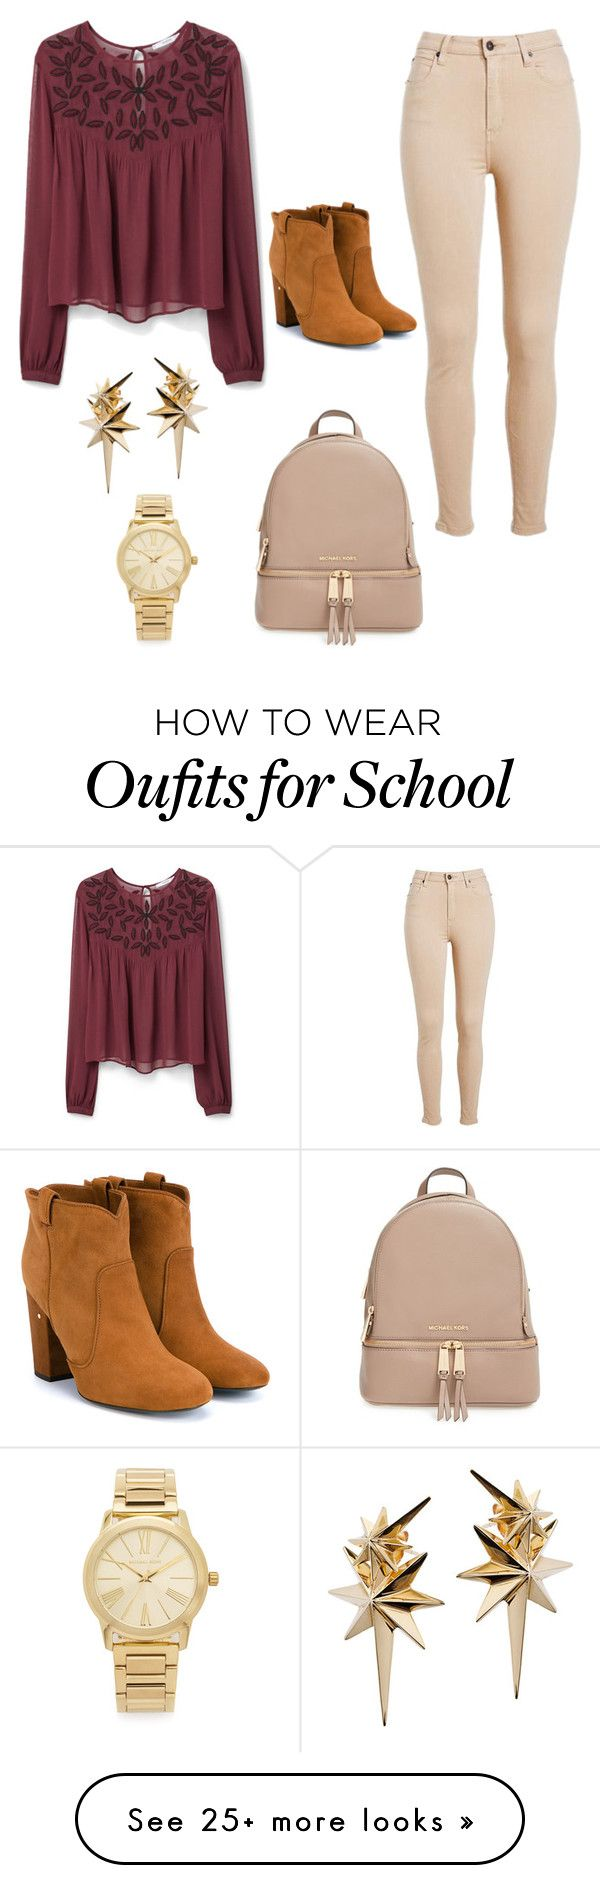 best outfits for me images on pinterest casual wear outfit